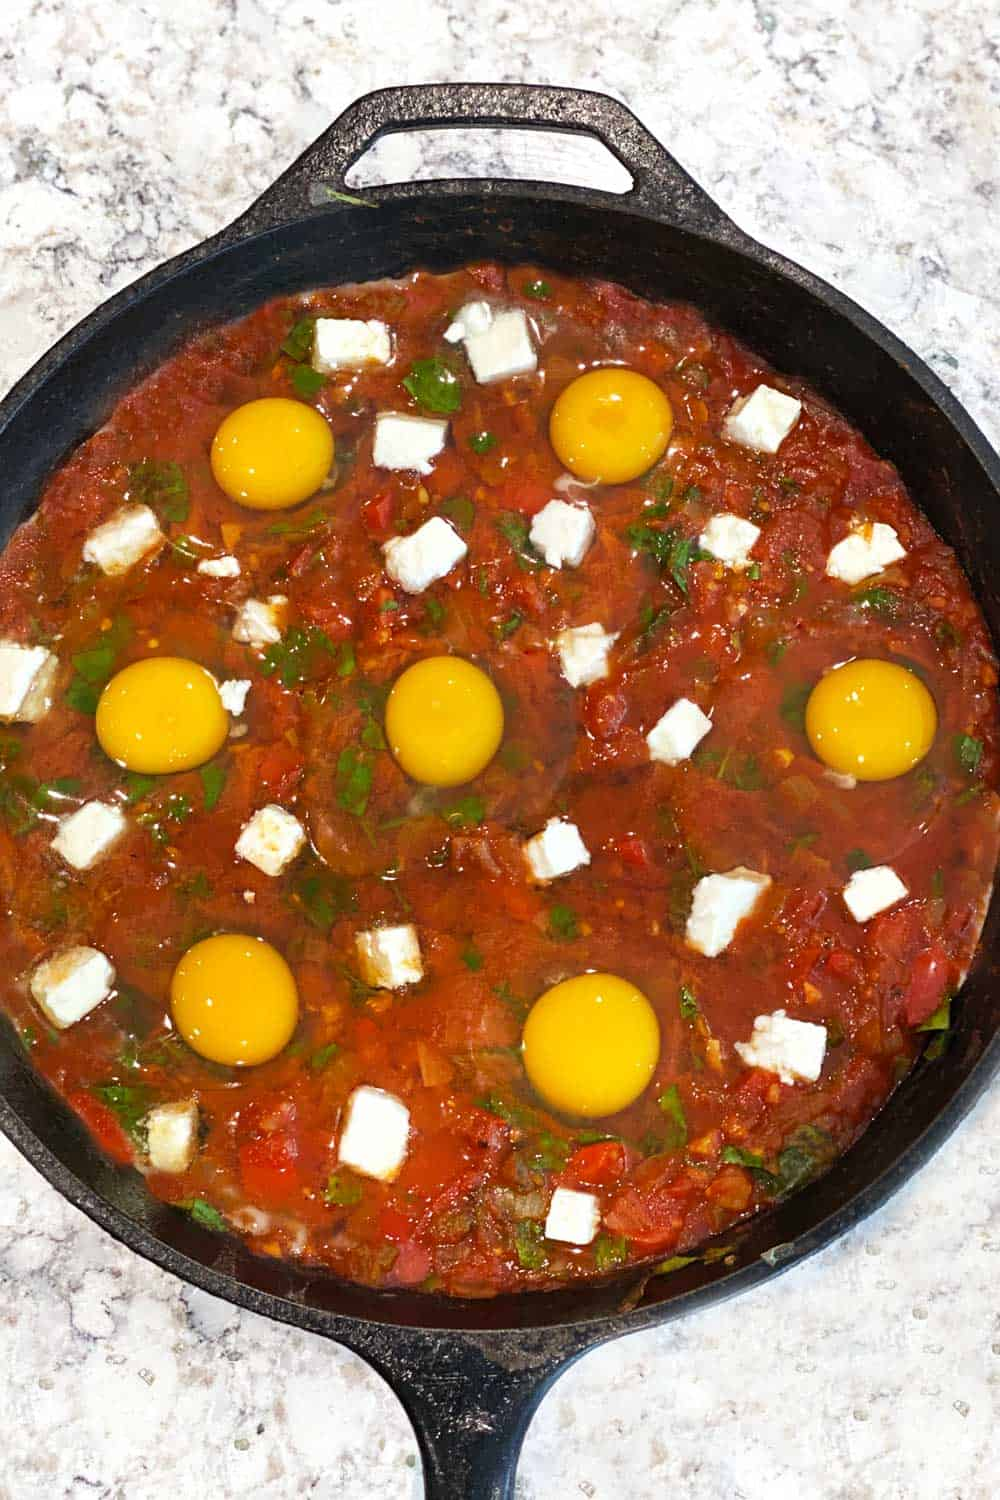 how to make shakshuka, raw eggs and feta in rich thick tomato sauce in a cast iron skillet, ready for the oven